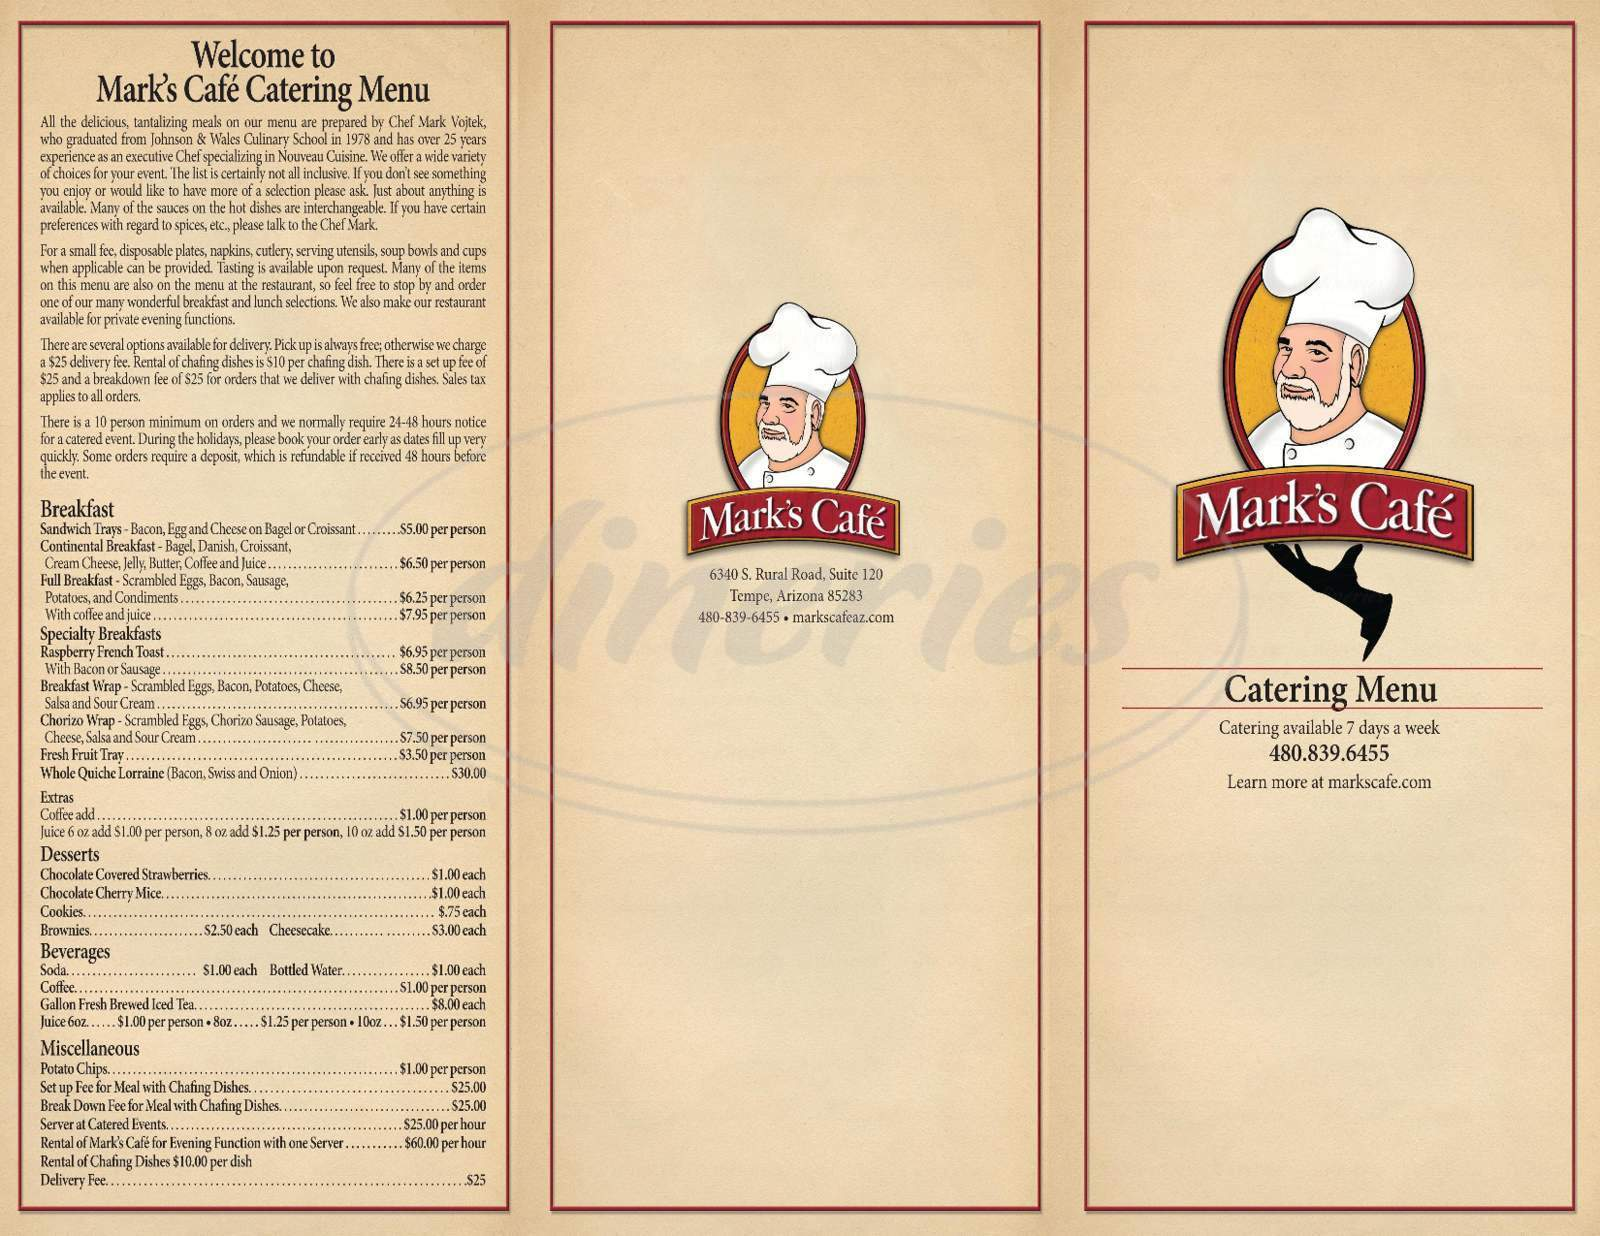 menu for Mark's Cafe